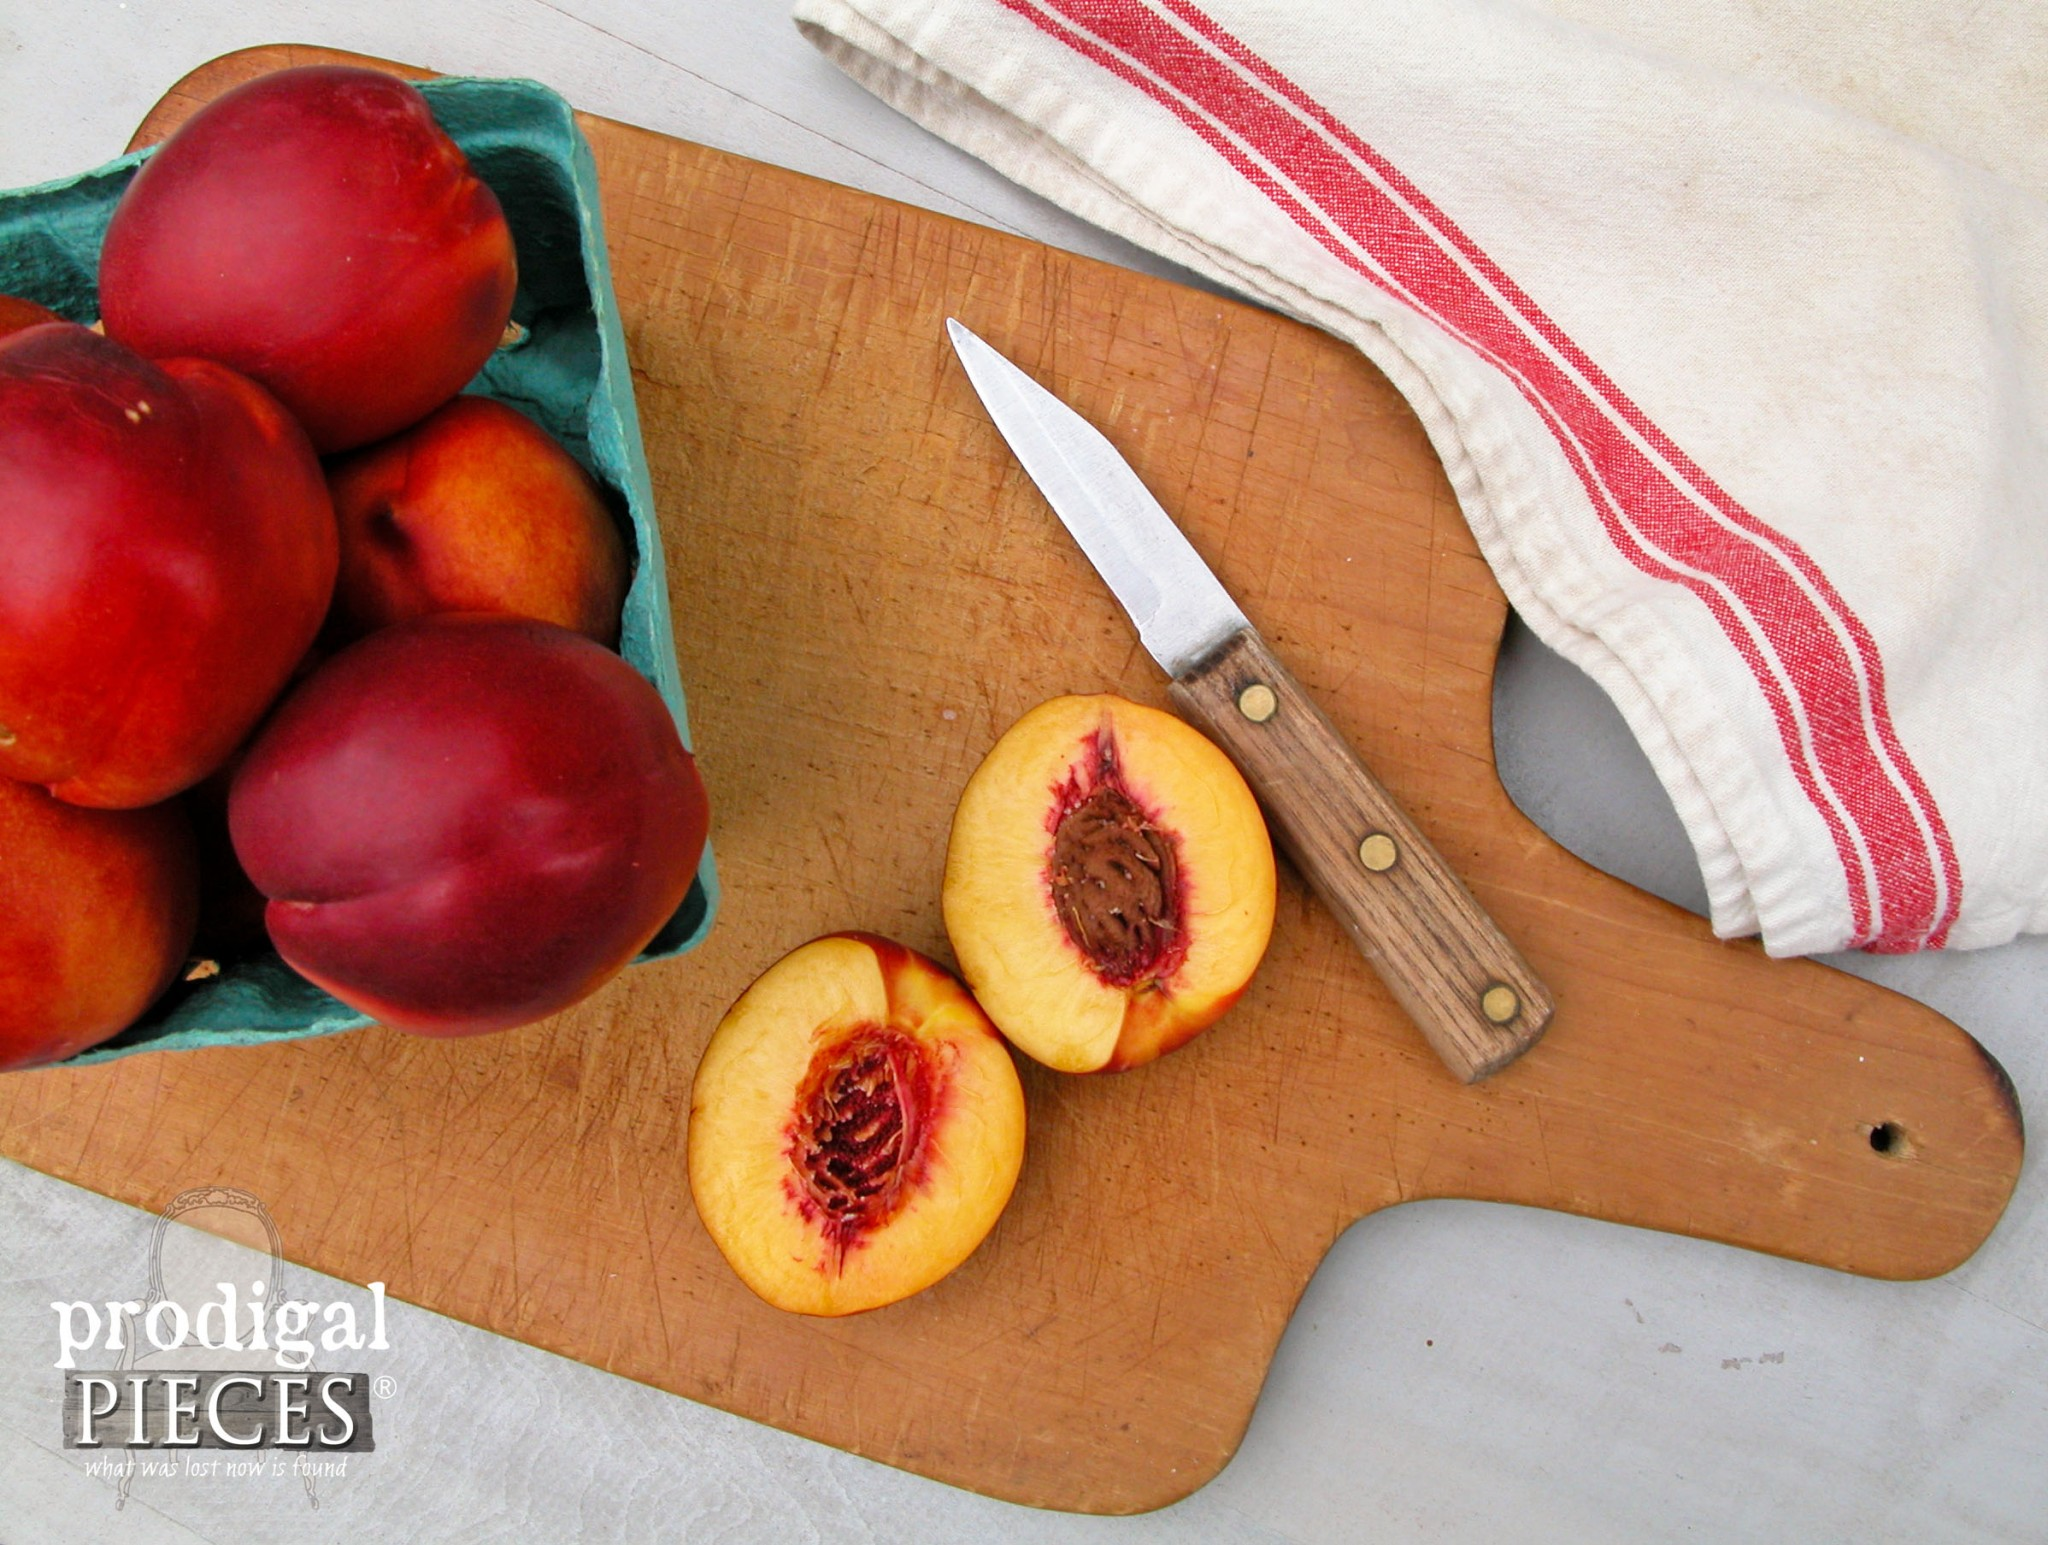 Selection of Fresh Sliced Nectarines for Roasted Stone Fruit Dessert by Prodigal Pieces | www.prodigalpieces.com